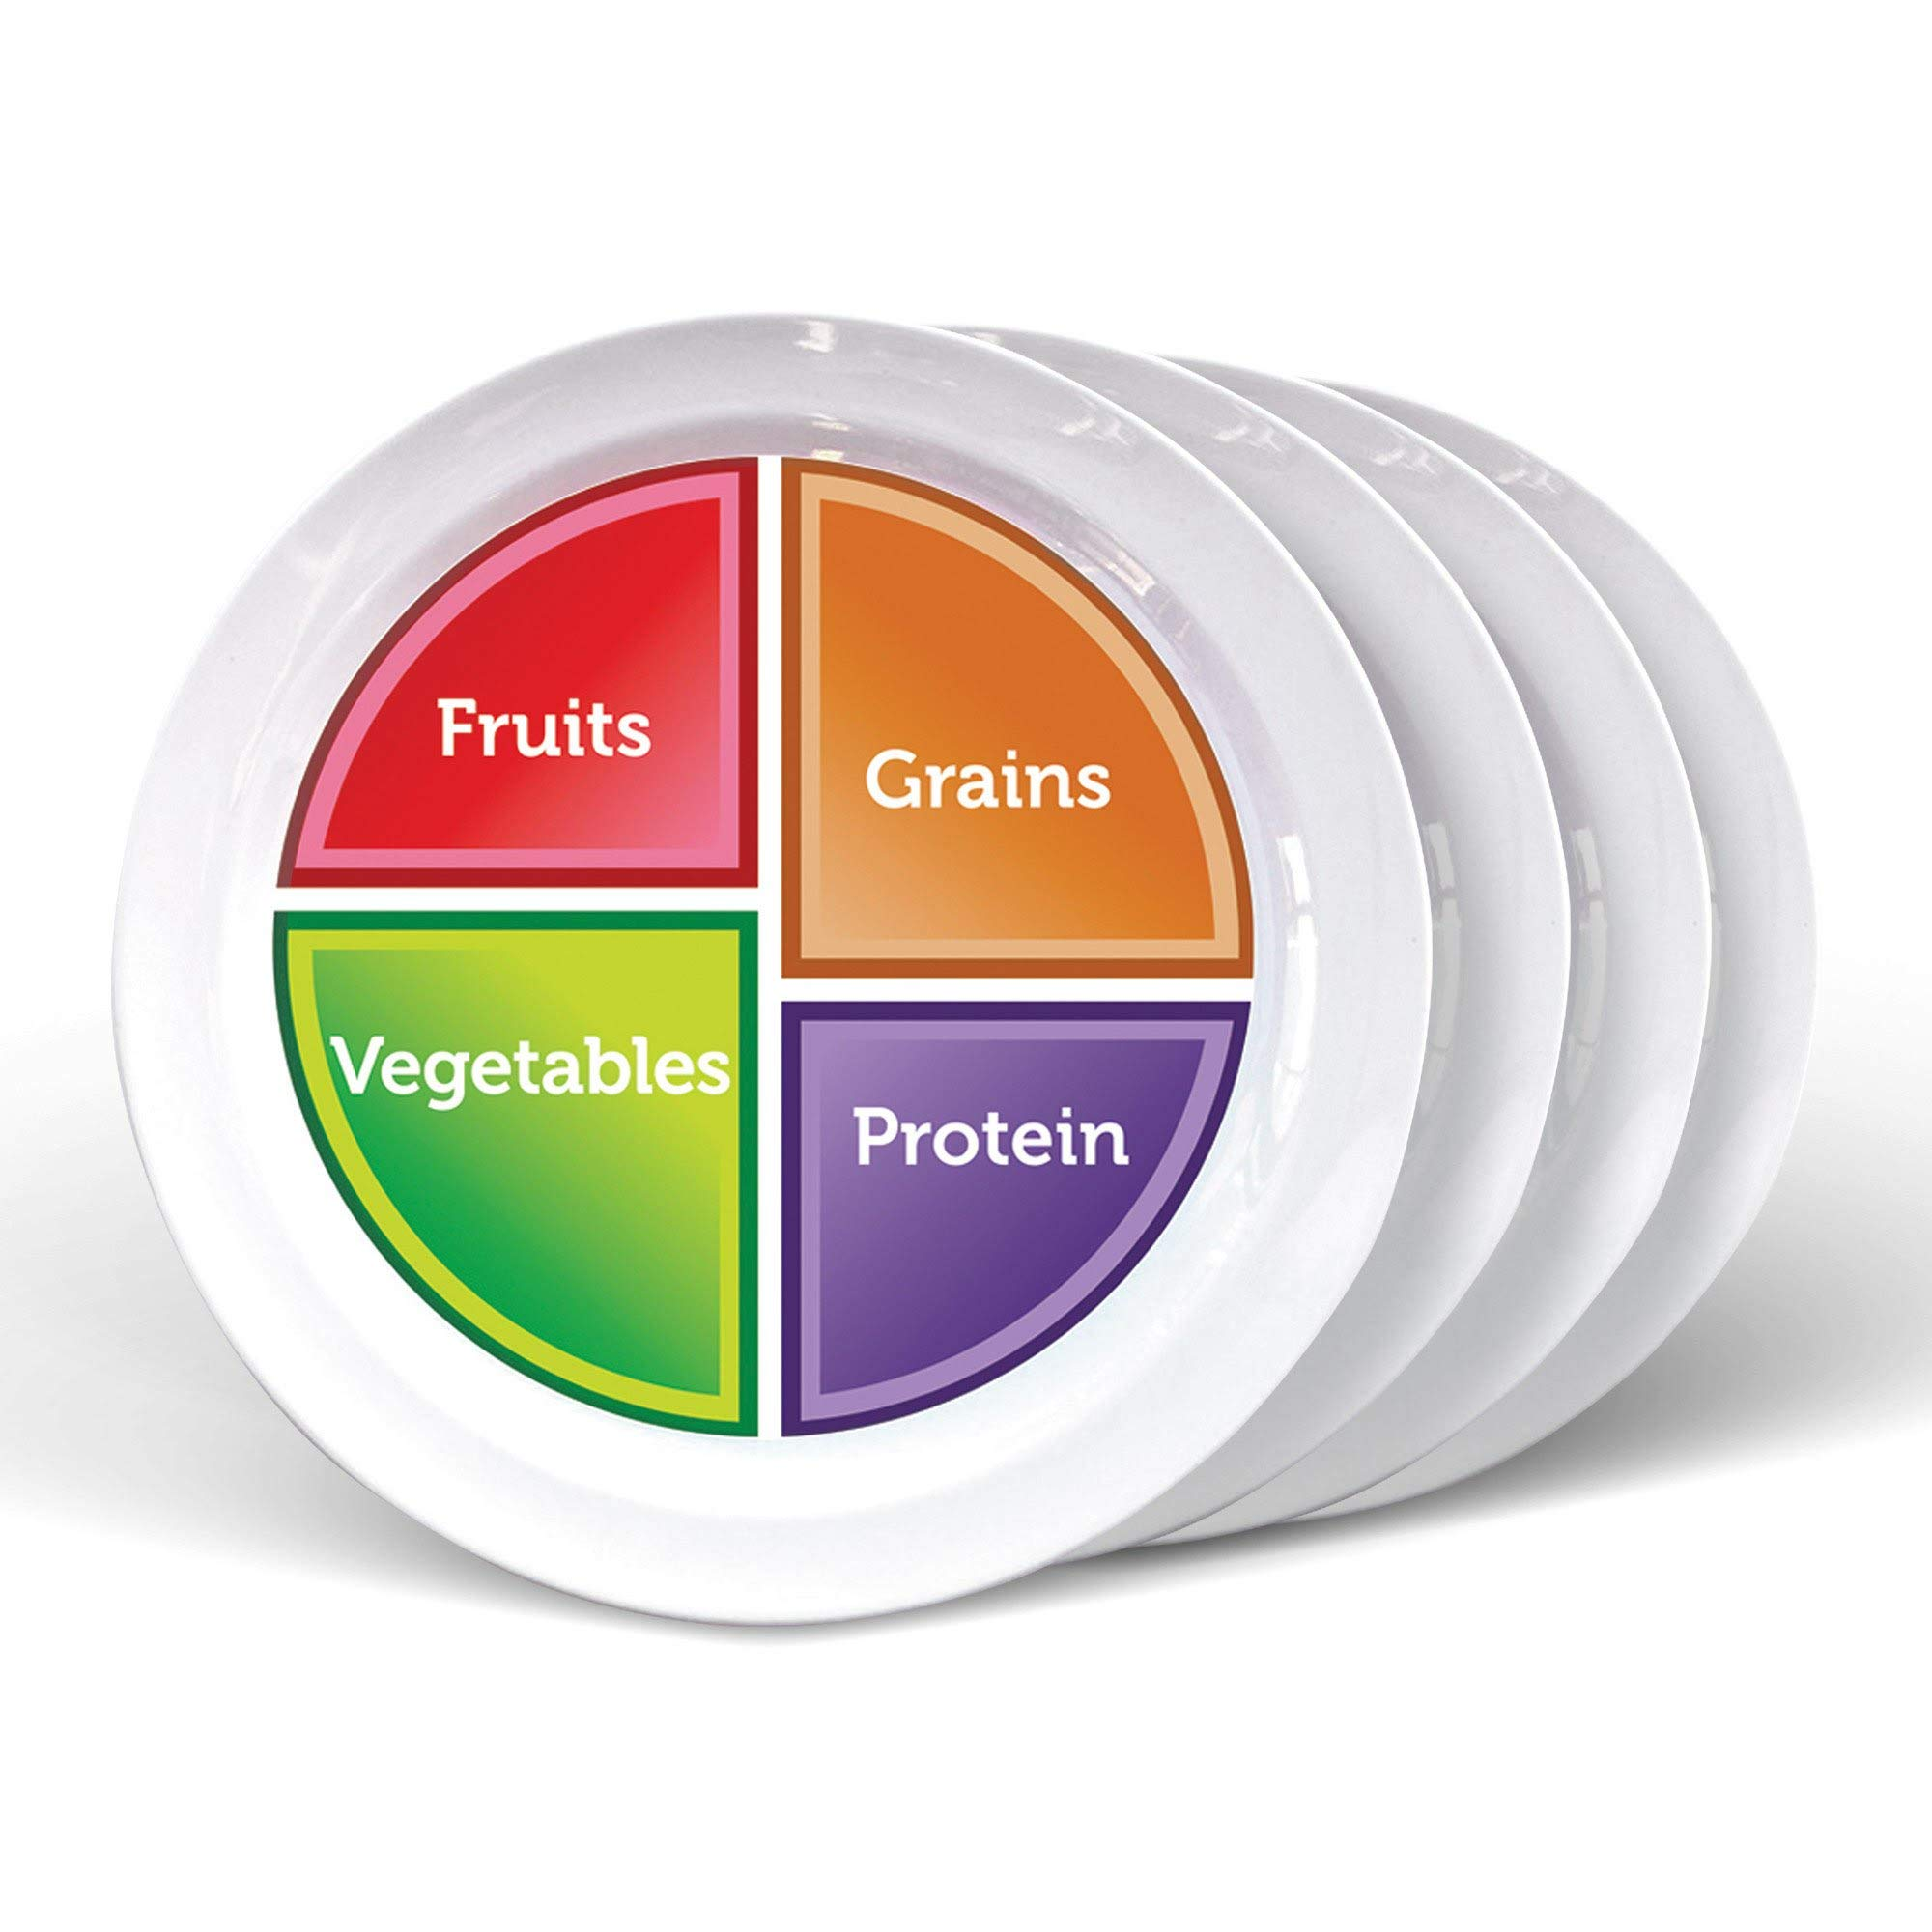 My Plate Portion Control Plate for Adults (4 pack of flat plates) by Super Healthy Kids